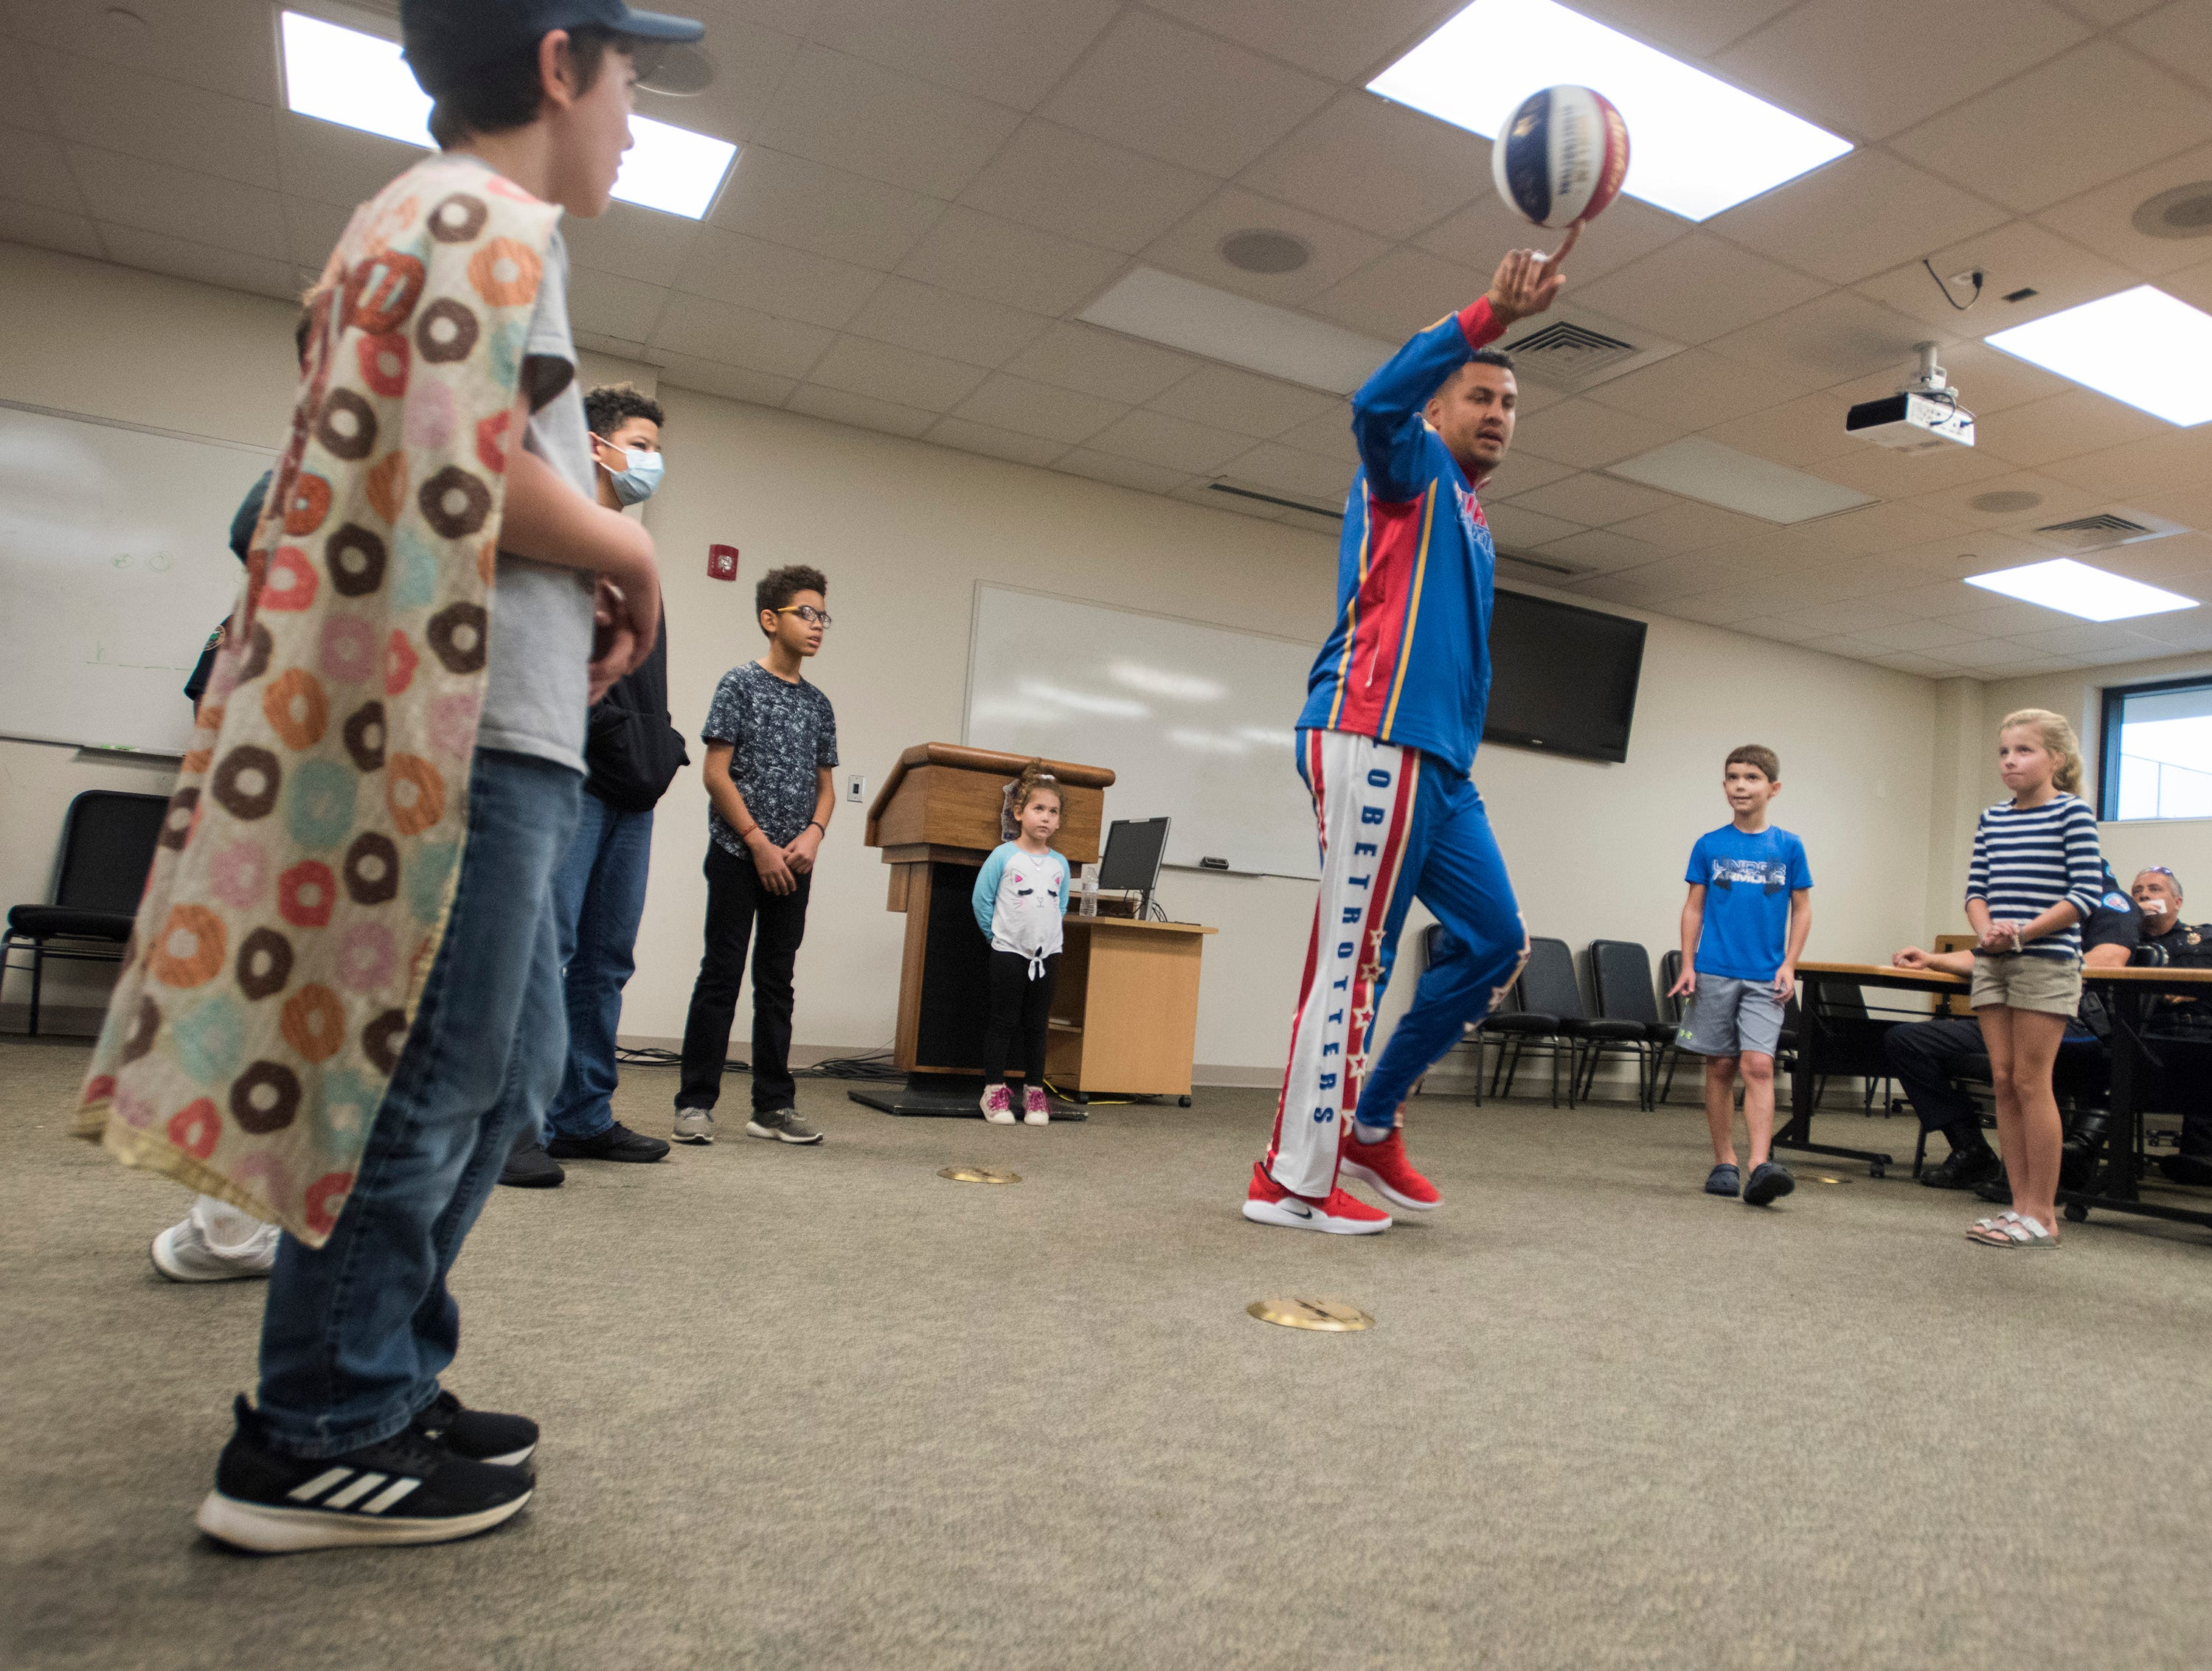 "El Gato Melendez, a member of the Harlem Globetrotters, performs a few tricks as Tyler Carach, left, and a group of children looks on during a birthday party for the 11-year old at the Pensacola Police Dept. on Wednesday, Nov. 7, 2018. Carach is also known as the ""donut boy"" and has delivered more than 70,000 of the pastries to law enforcement officers around the country."